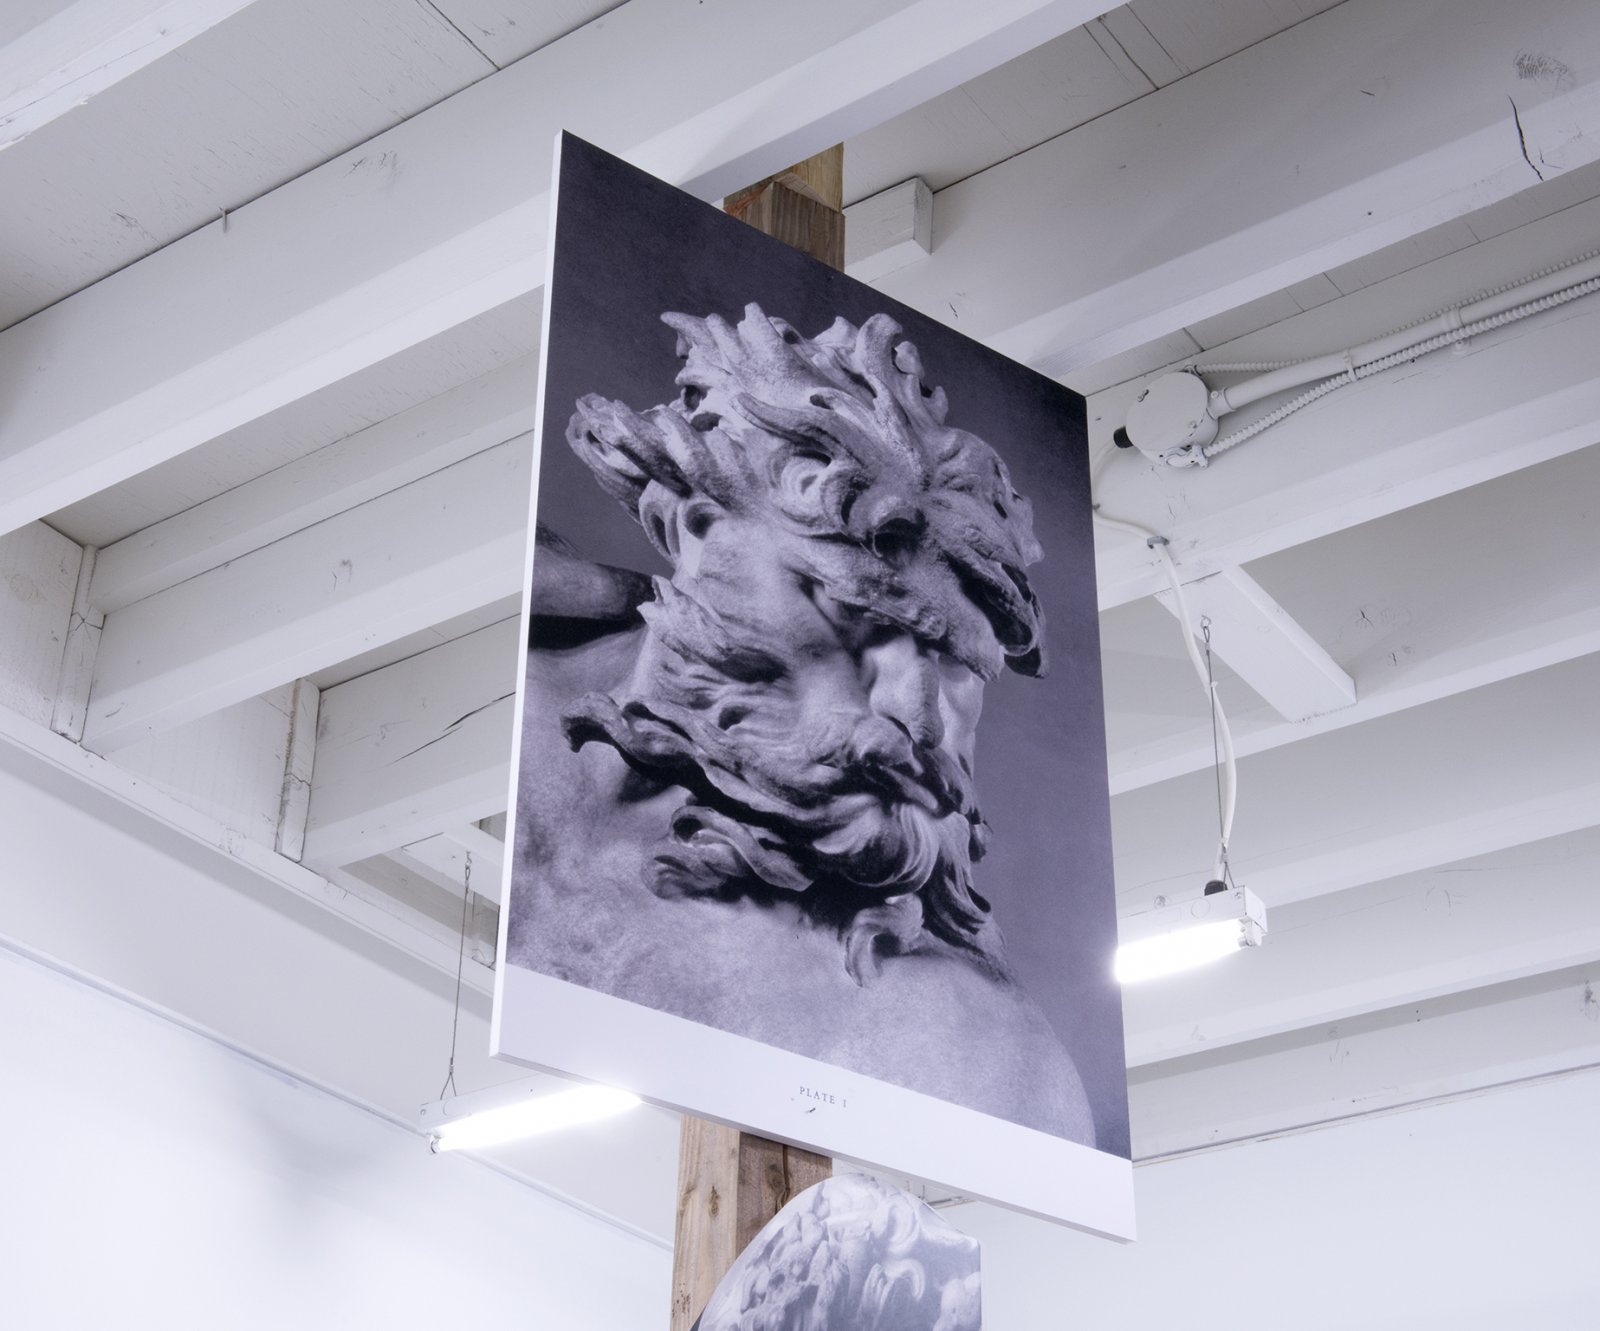 Geoffrey Farmer, Over, under, floating, rushing, with the delicate colour of violet. From curly hair grapes grow. This green belongs to the Arctic. (detail), 2014, douglas fir pole, 6 photographs mounted on foamcore, 200 x 4 x 4 in. (508 x 9 x 9 cm) by Geoffrey Farmer